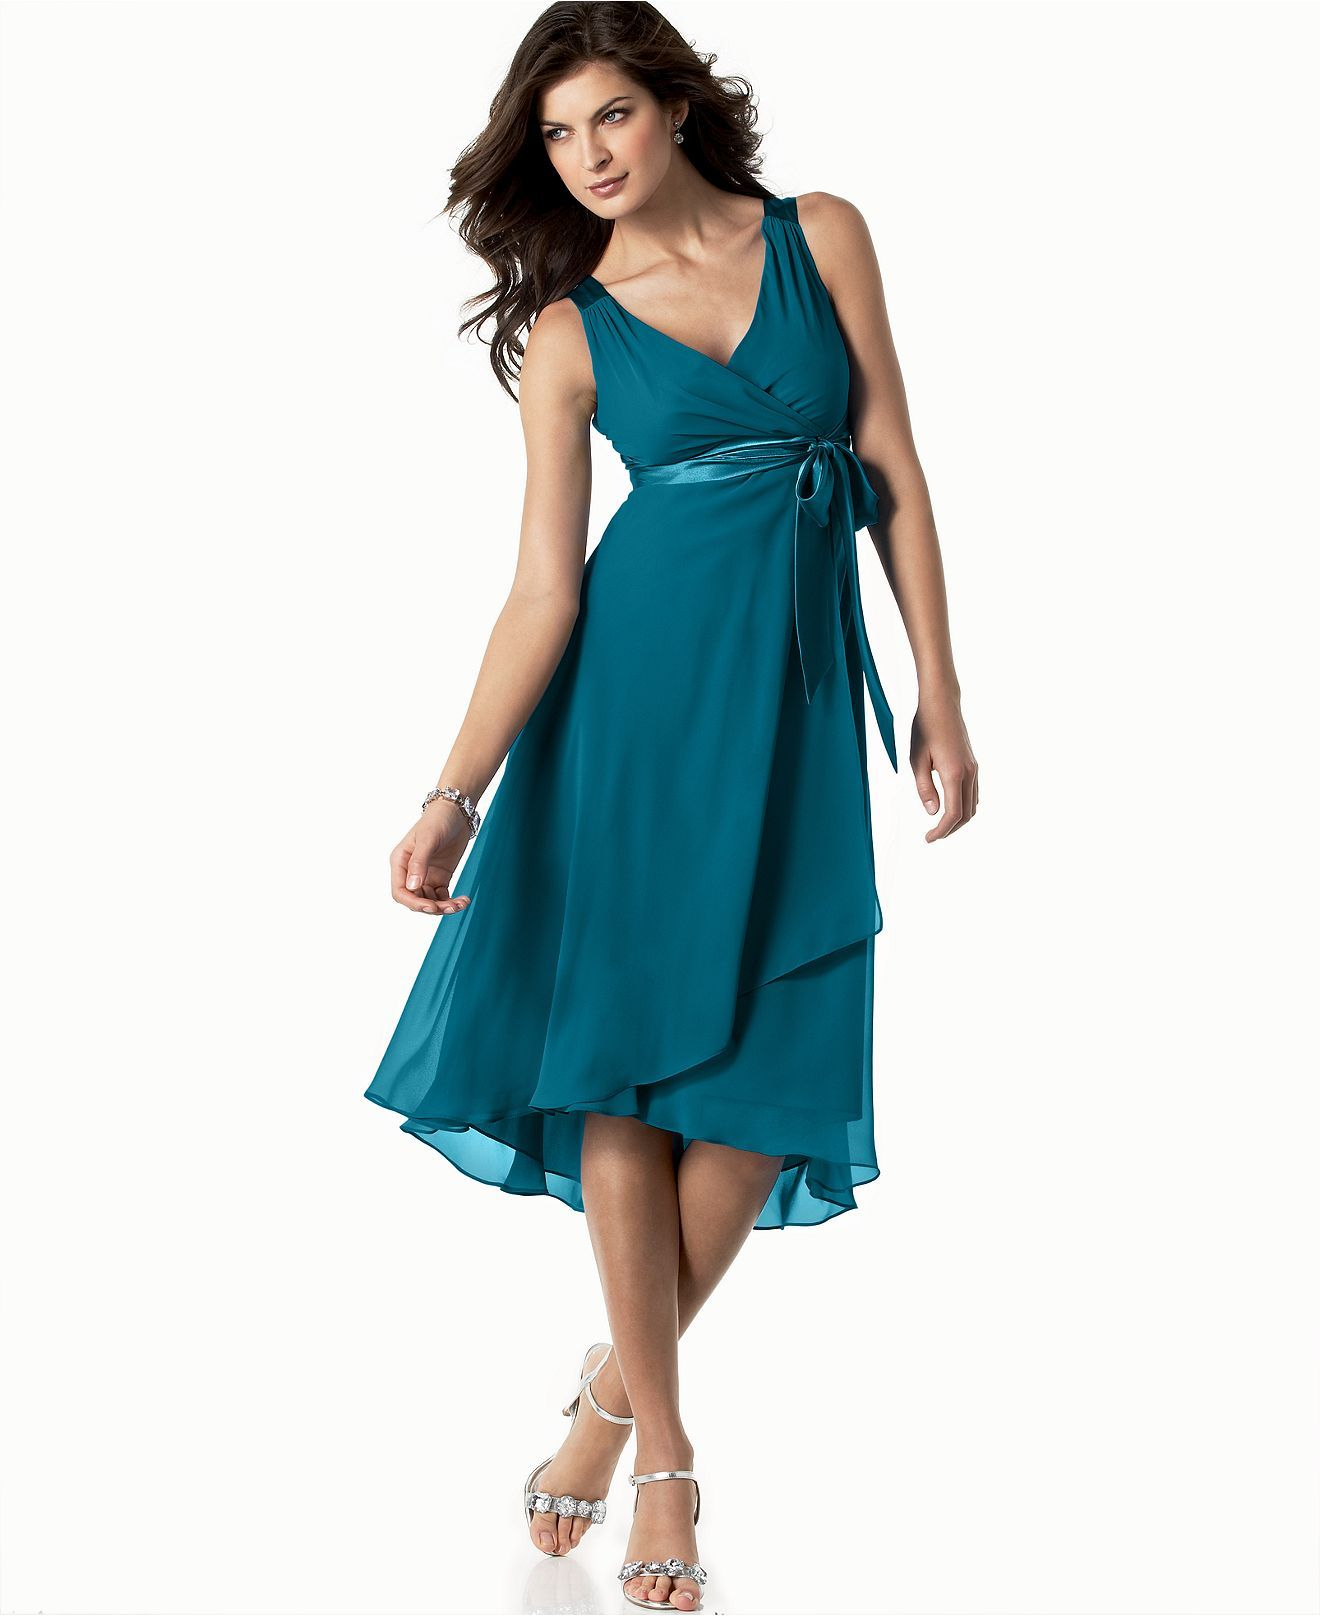 Evan Picone Dress, Sleeveless Satin Tie - Dresses - Women - Macys ...